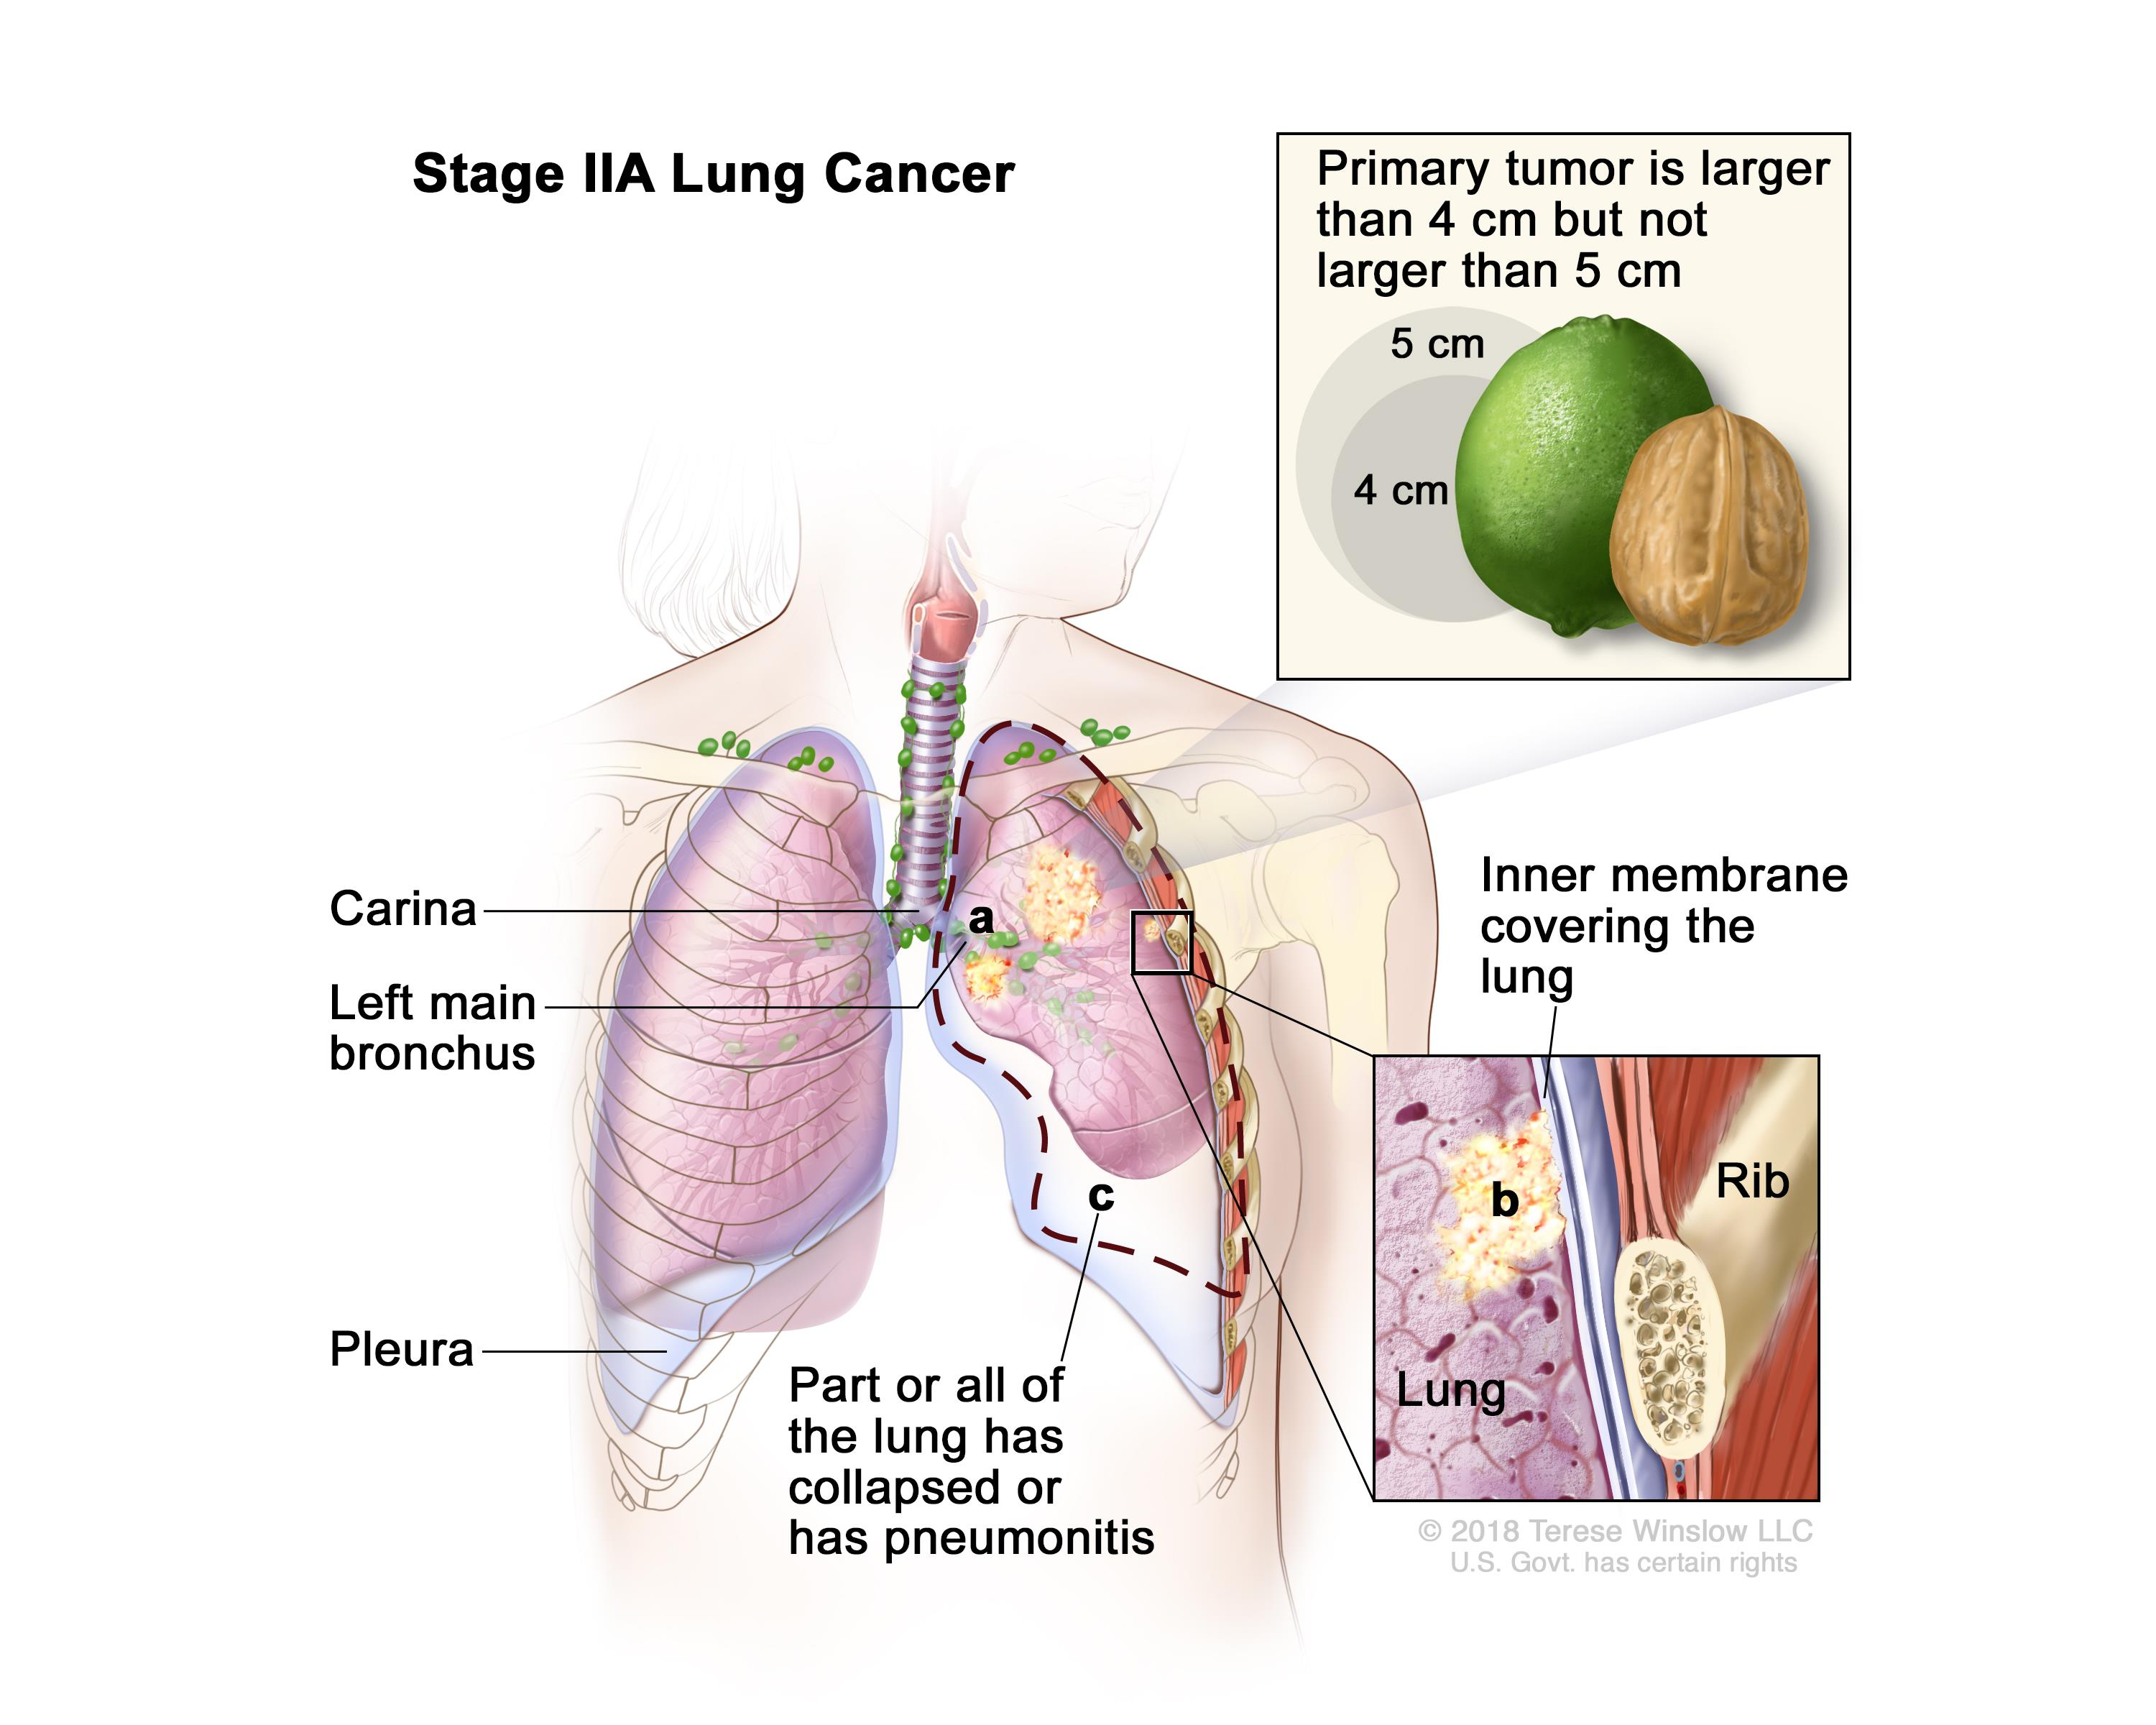 Thoracic Surgery - Non-Small Cell Lung Cancer